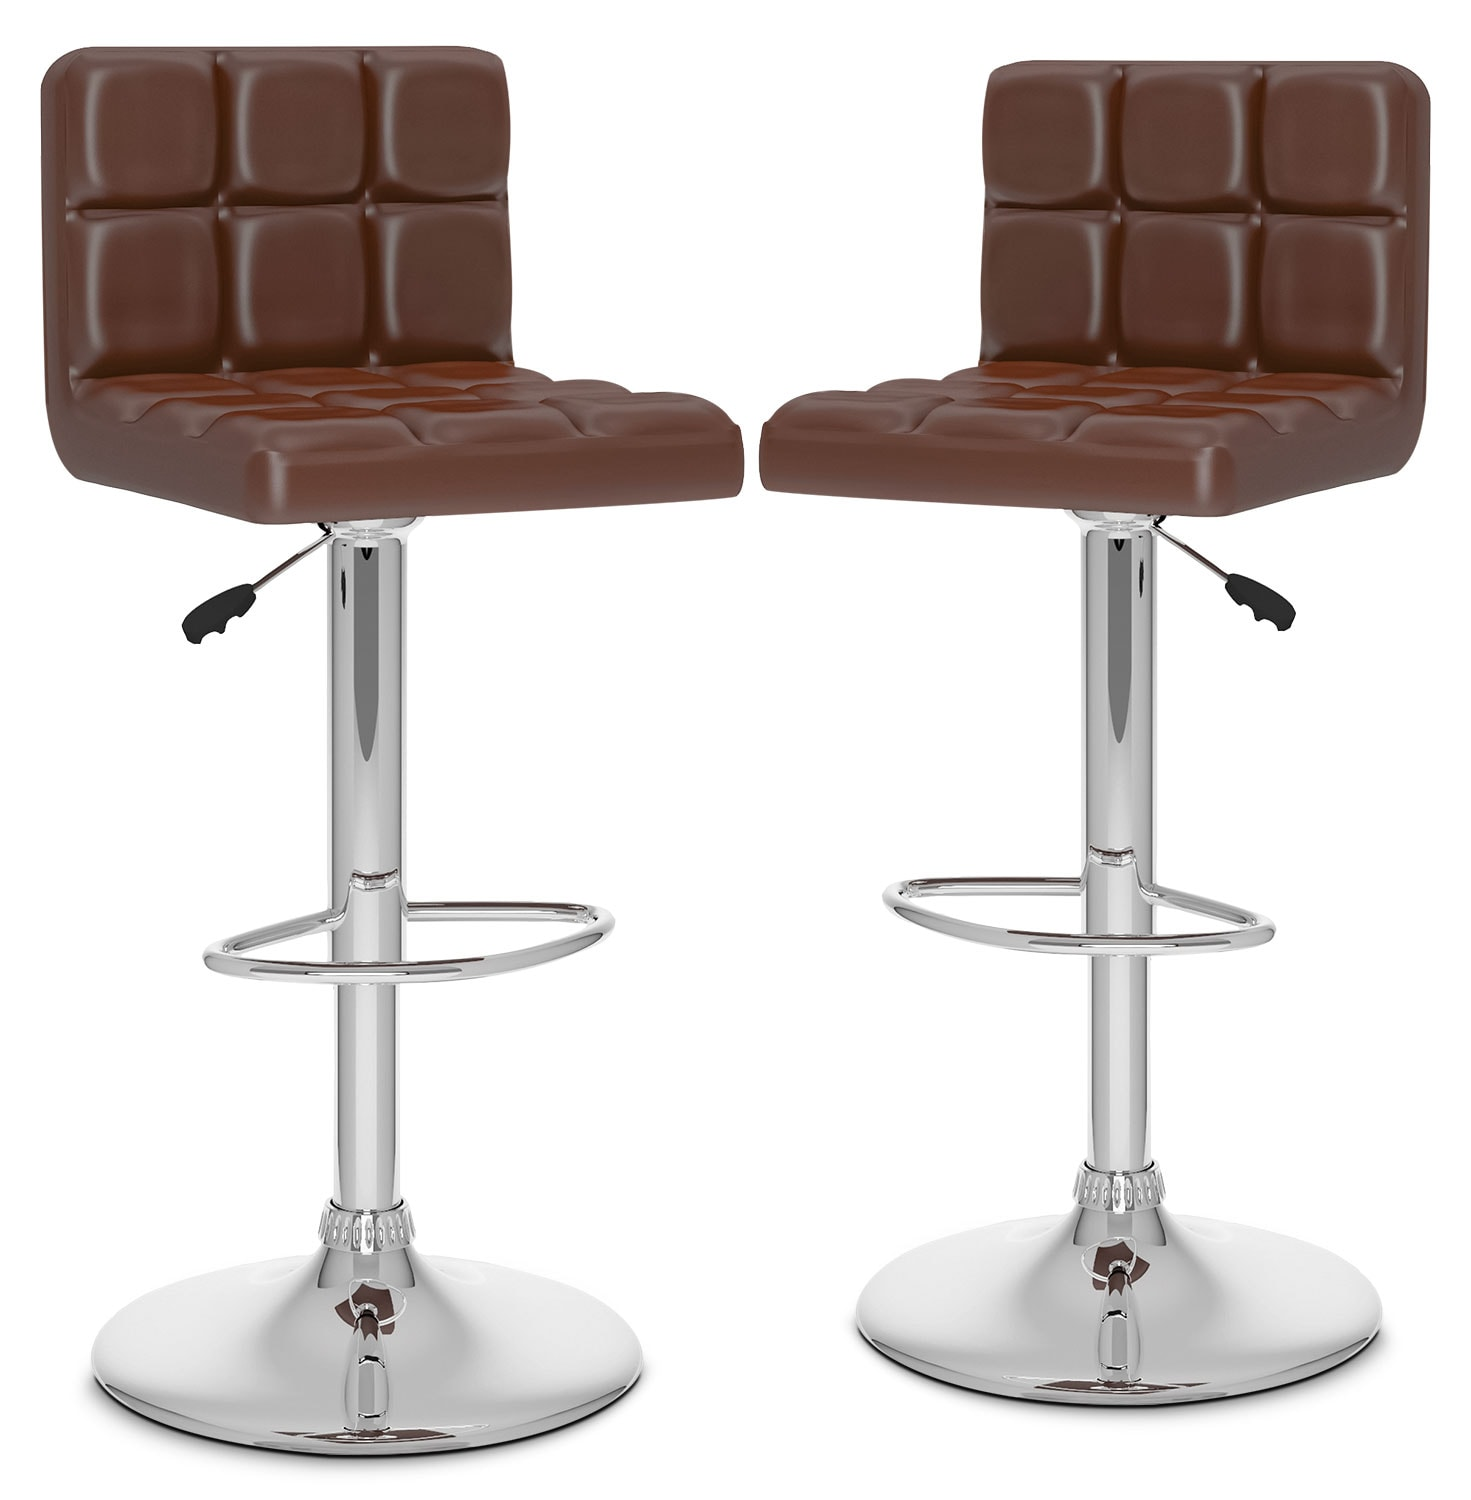 Dining Room Furniture - CorLiving High-Back Adjustable Bar Stool, Set of 2 – Brown